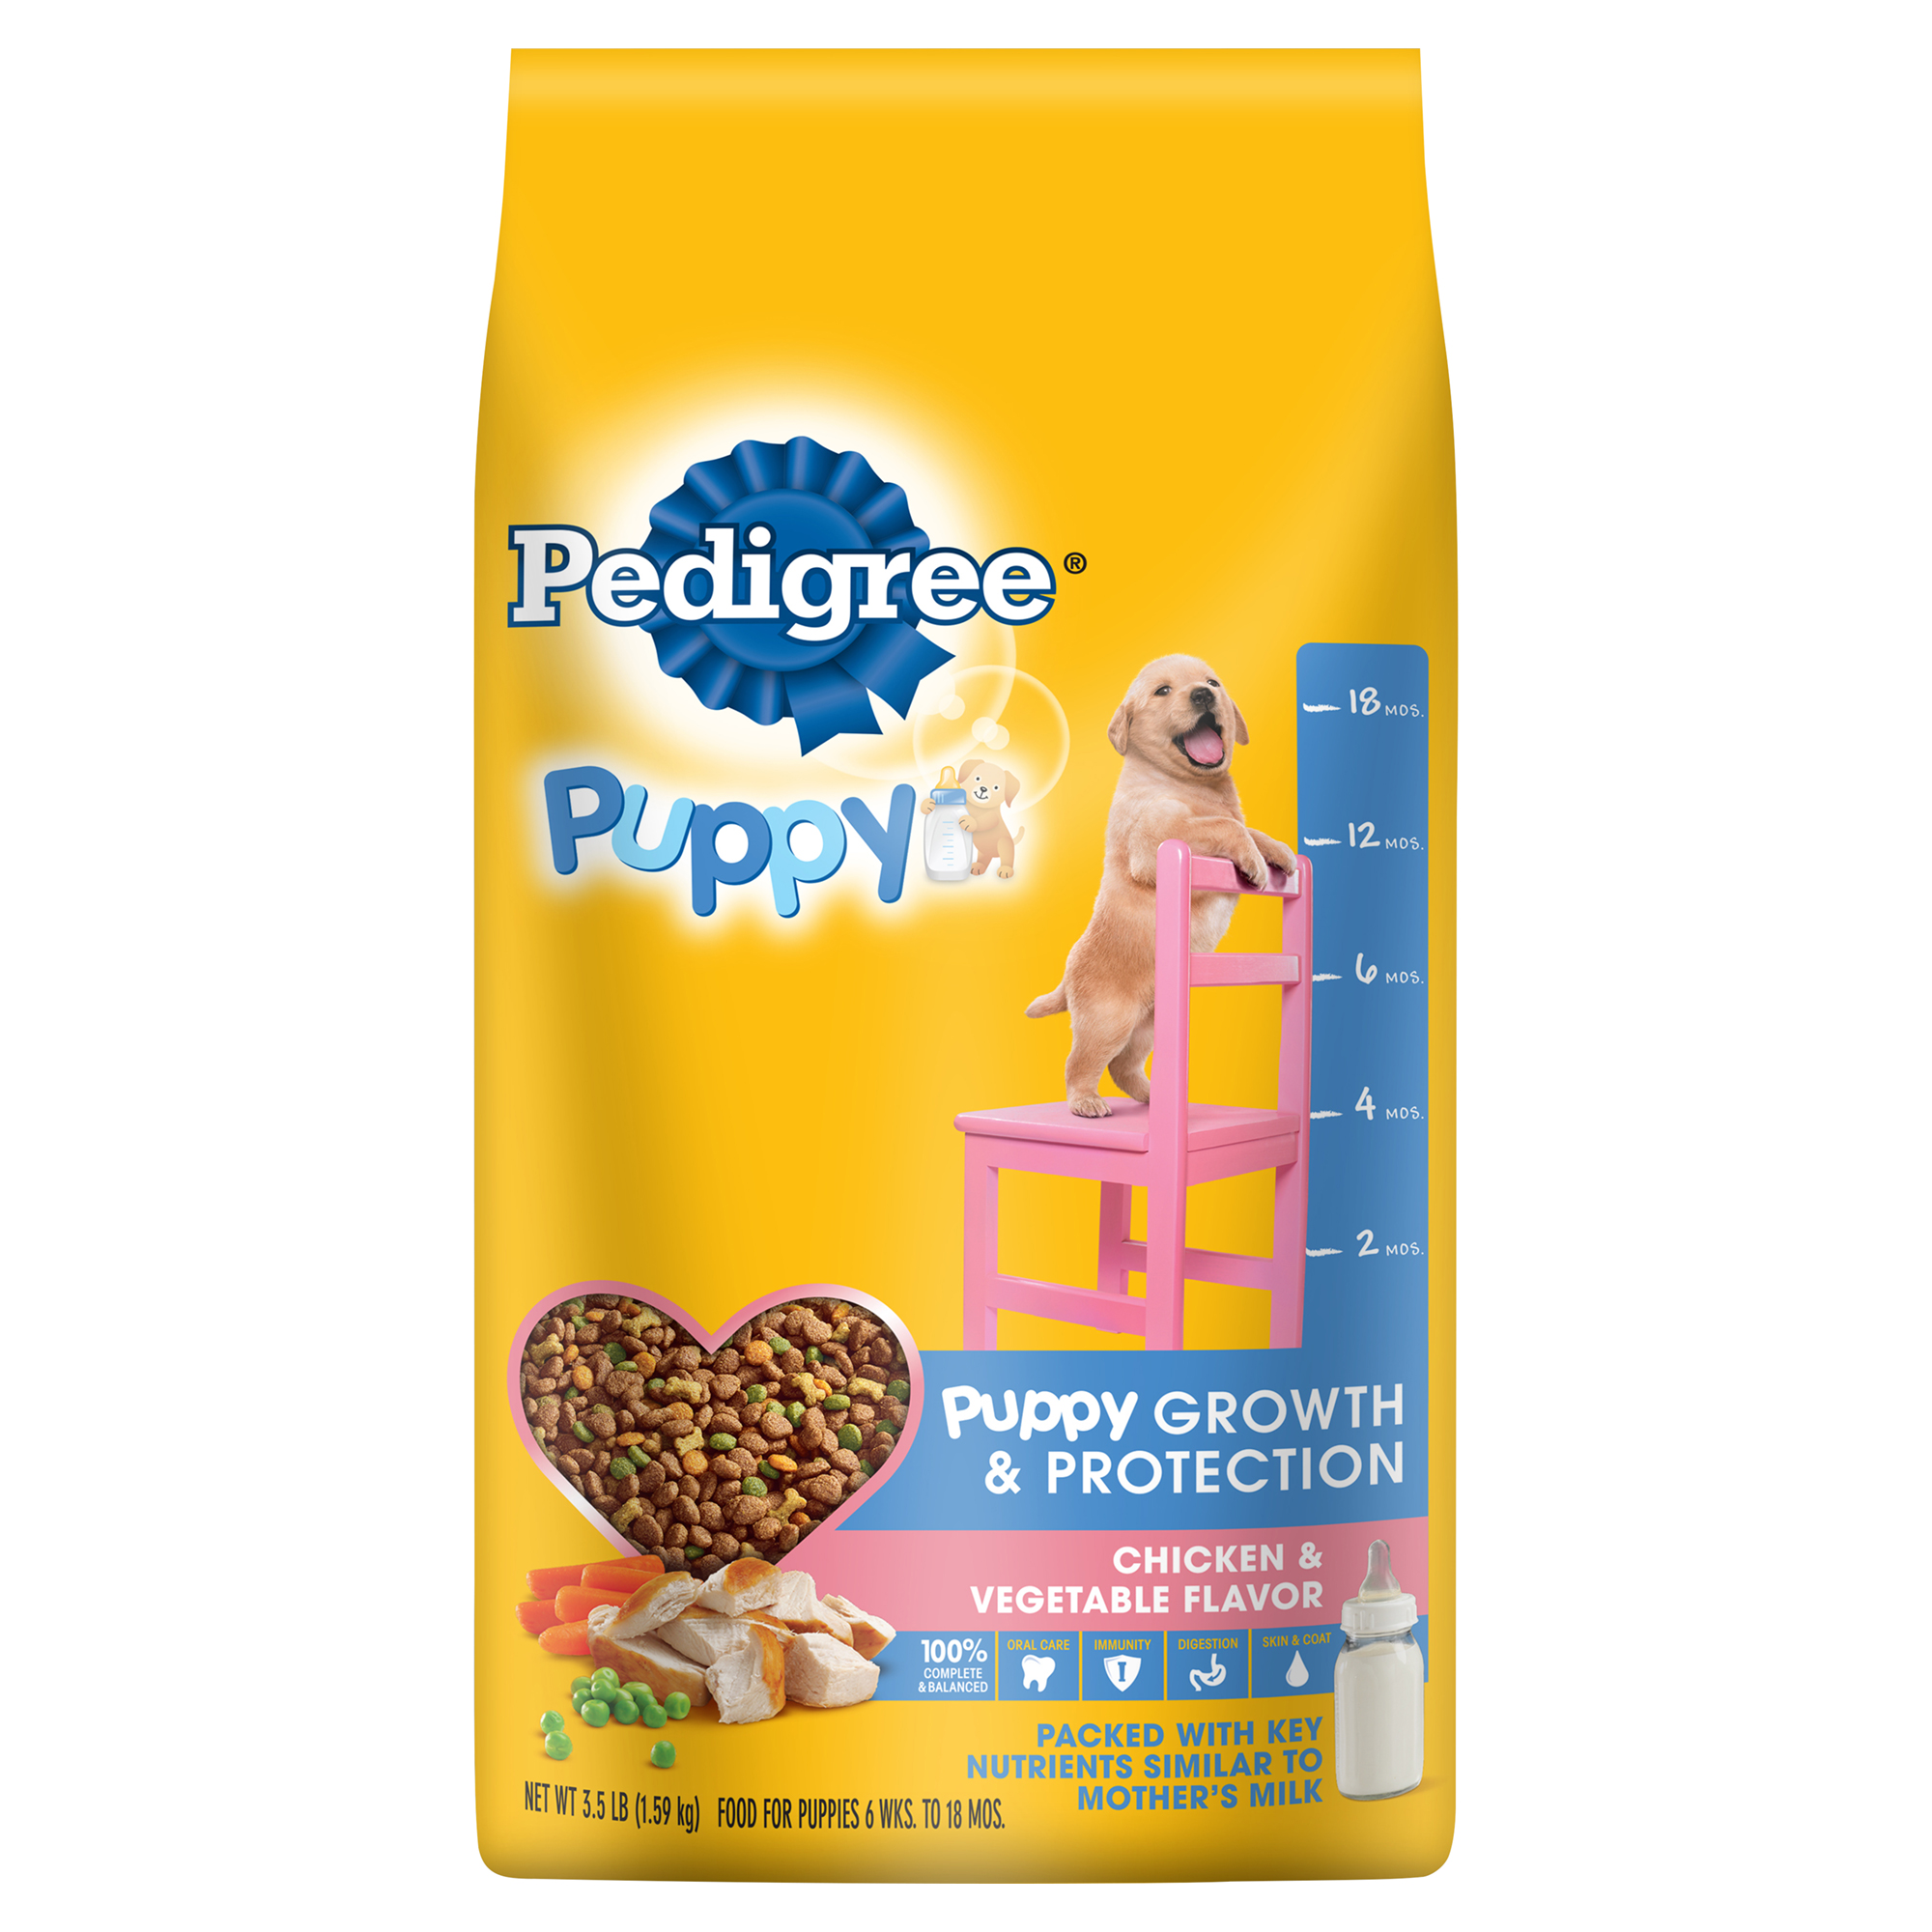 PEDIGREE Puppy Growth and Protection Chicken & Vegetable Flavor Dry  Dog Food 3.5 Pounds